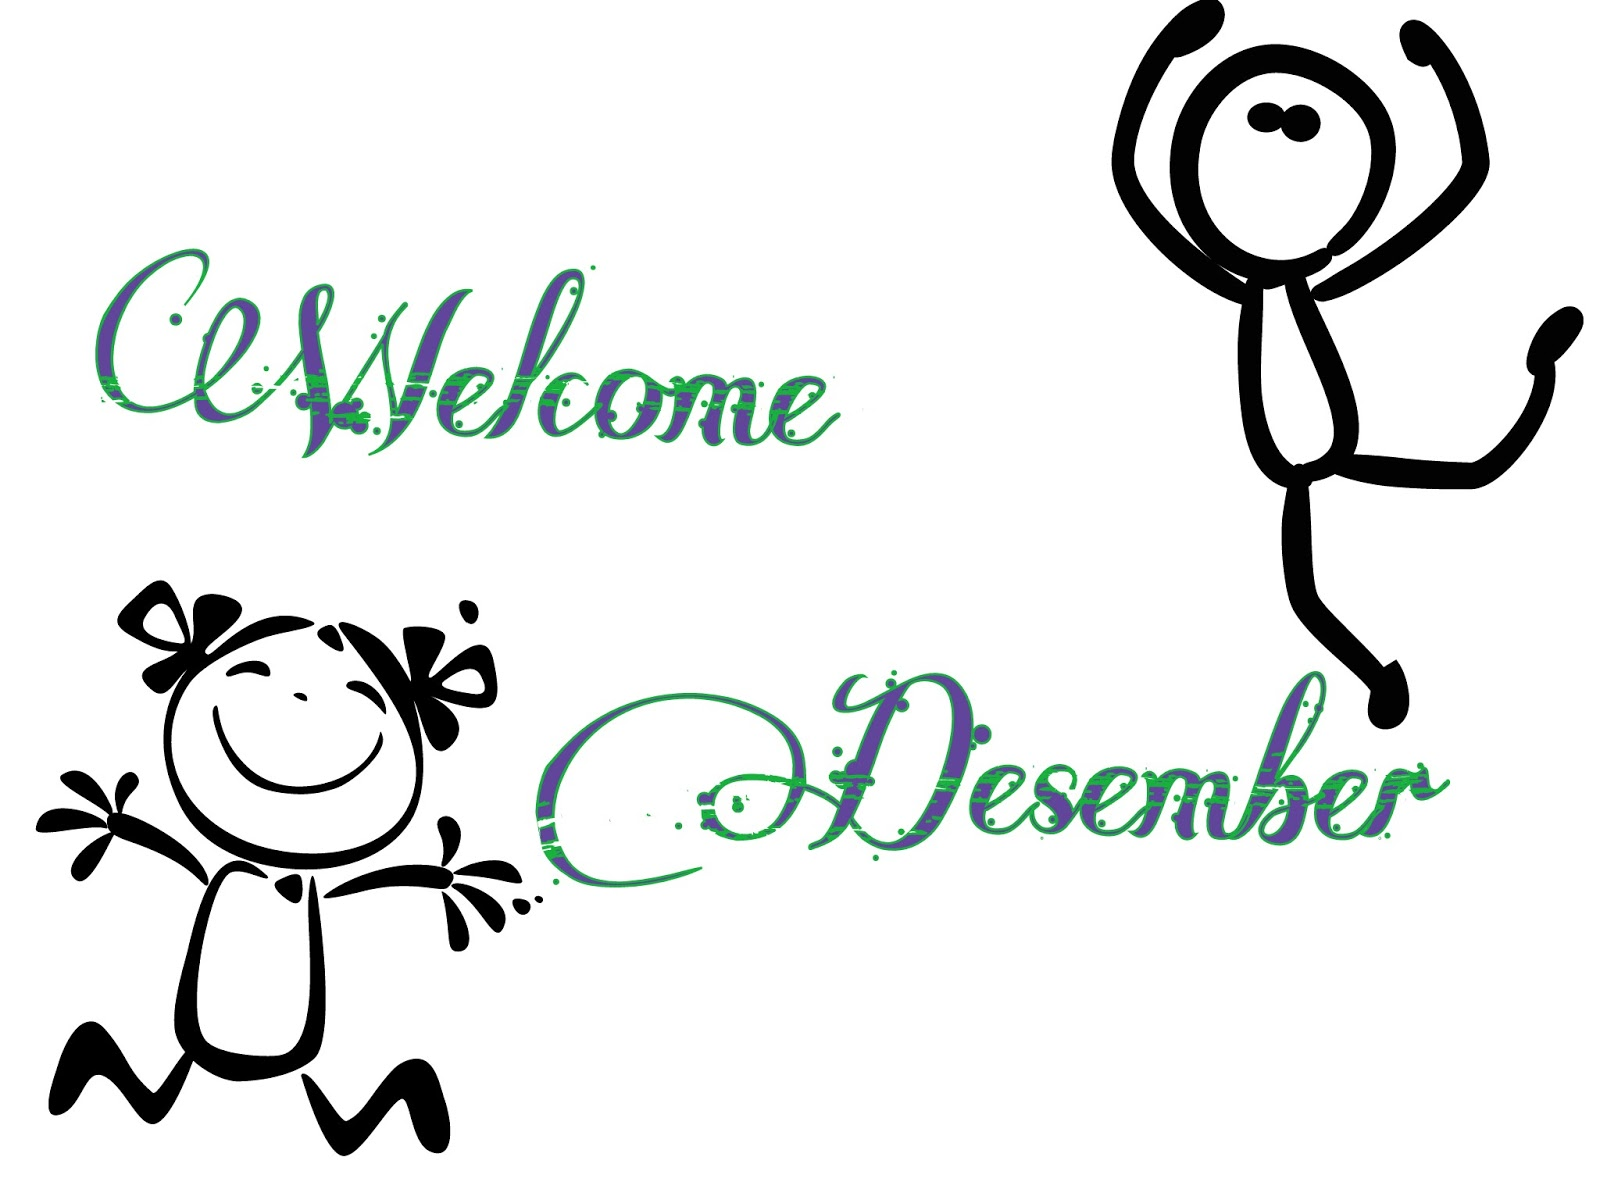 Gambar Welcome Desember 27